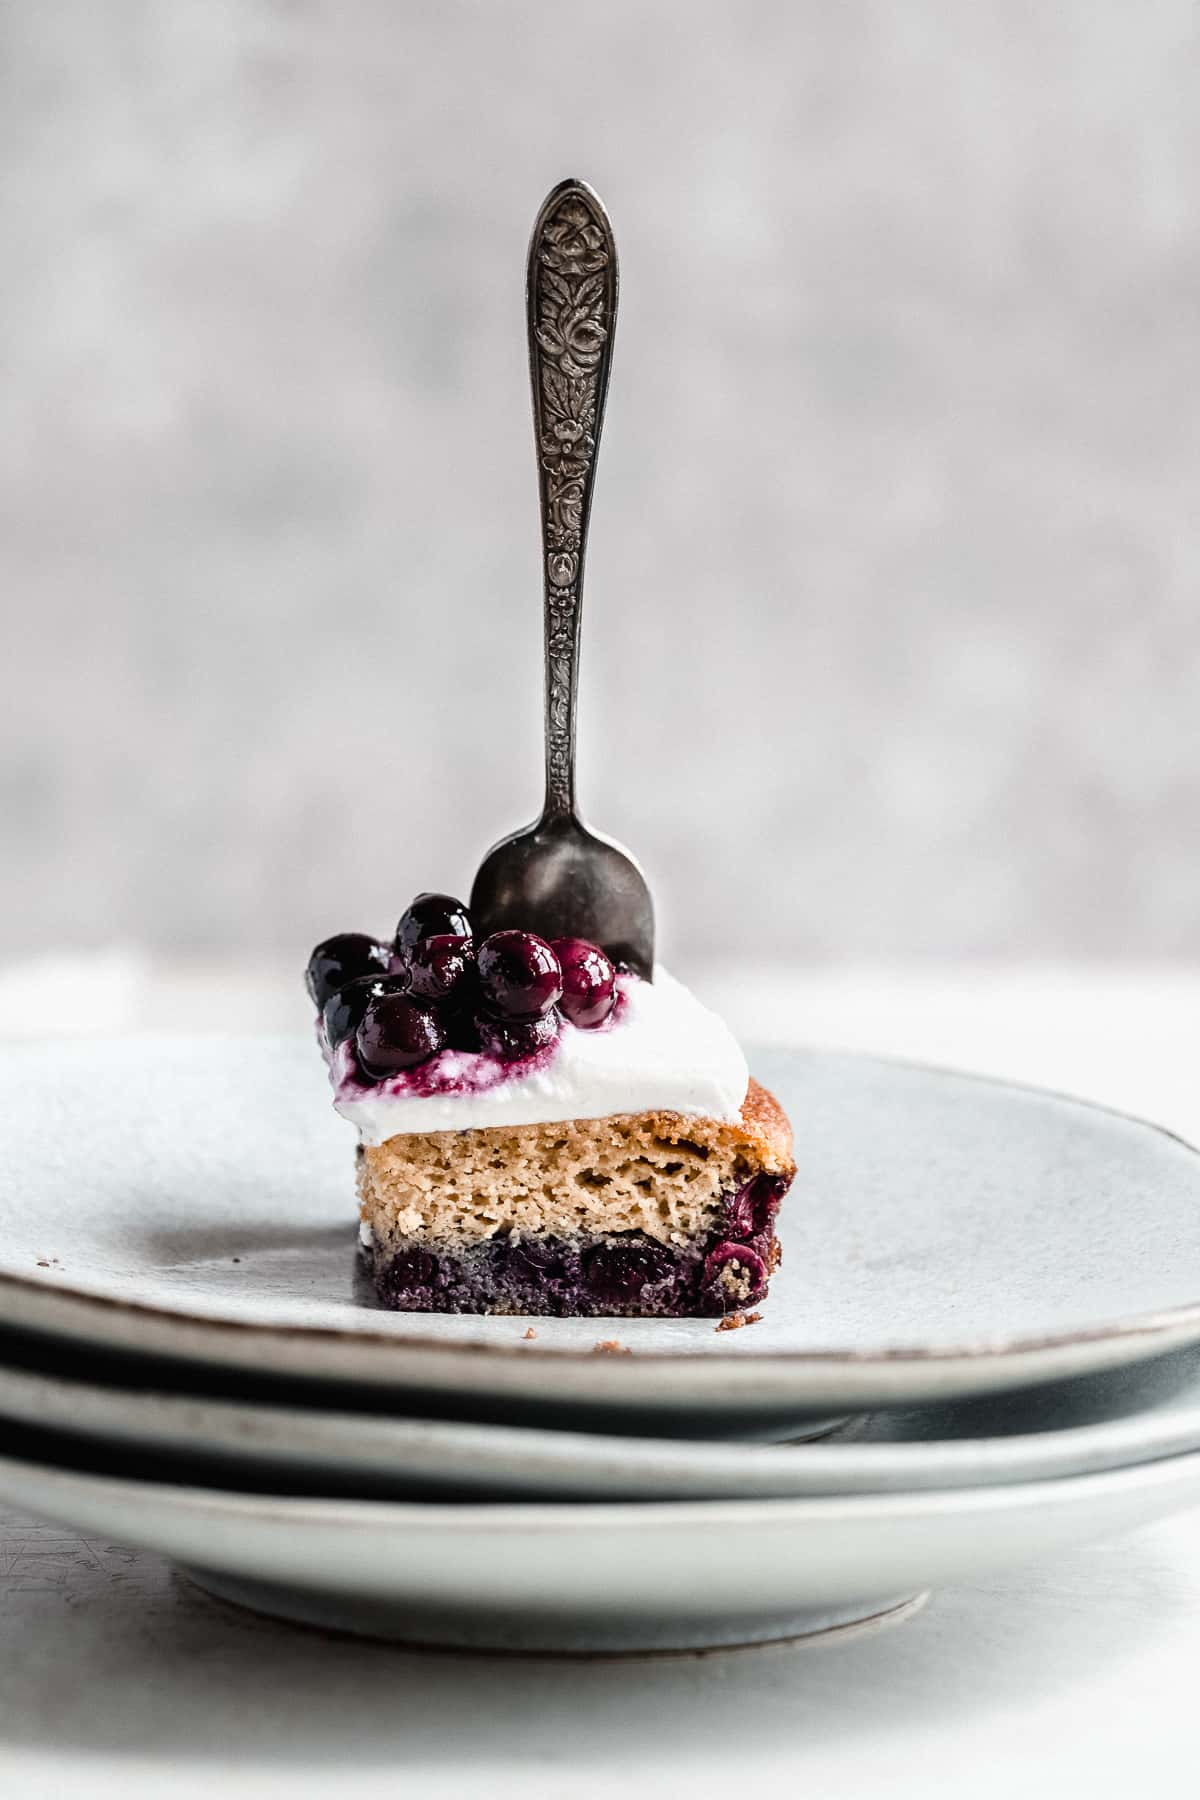 Side view photo of a single serving of Blueberry Vanilla Sheet Cake on a stack of gray plates with a silver fork sticking up from the cake.